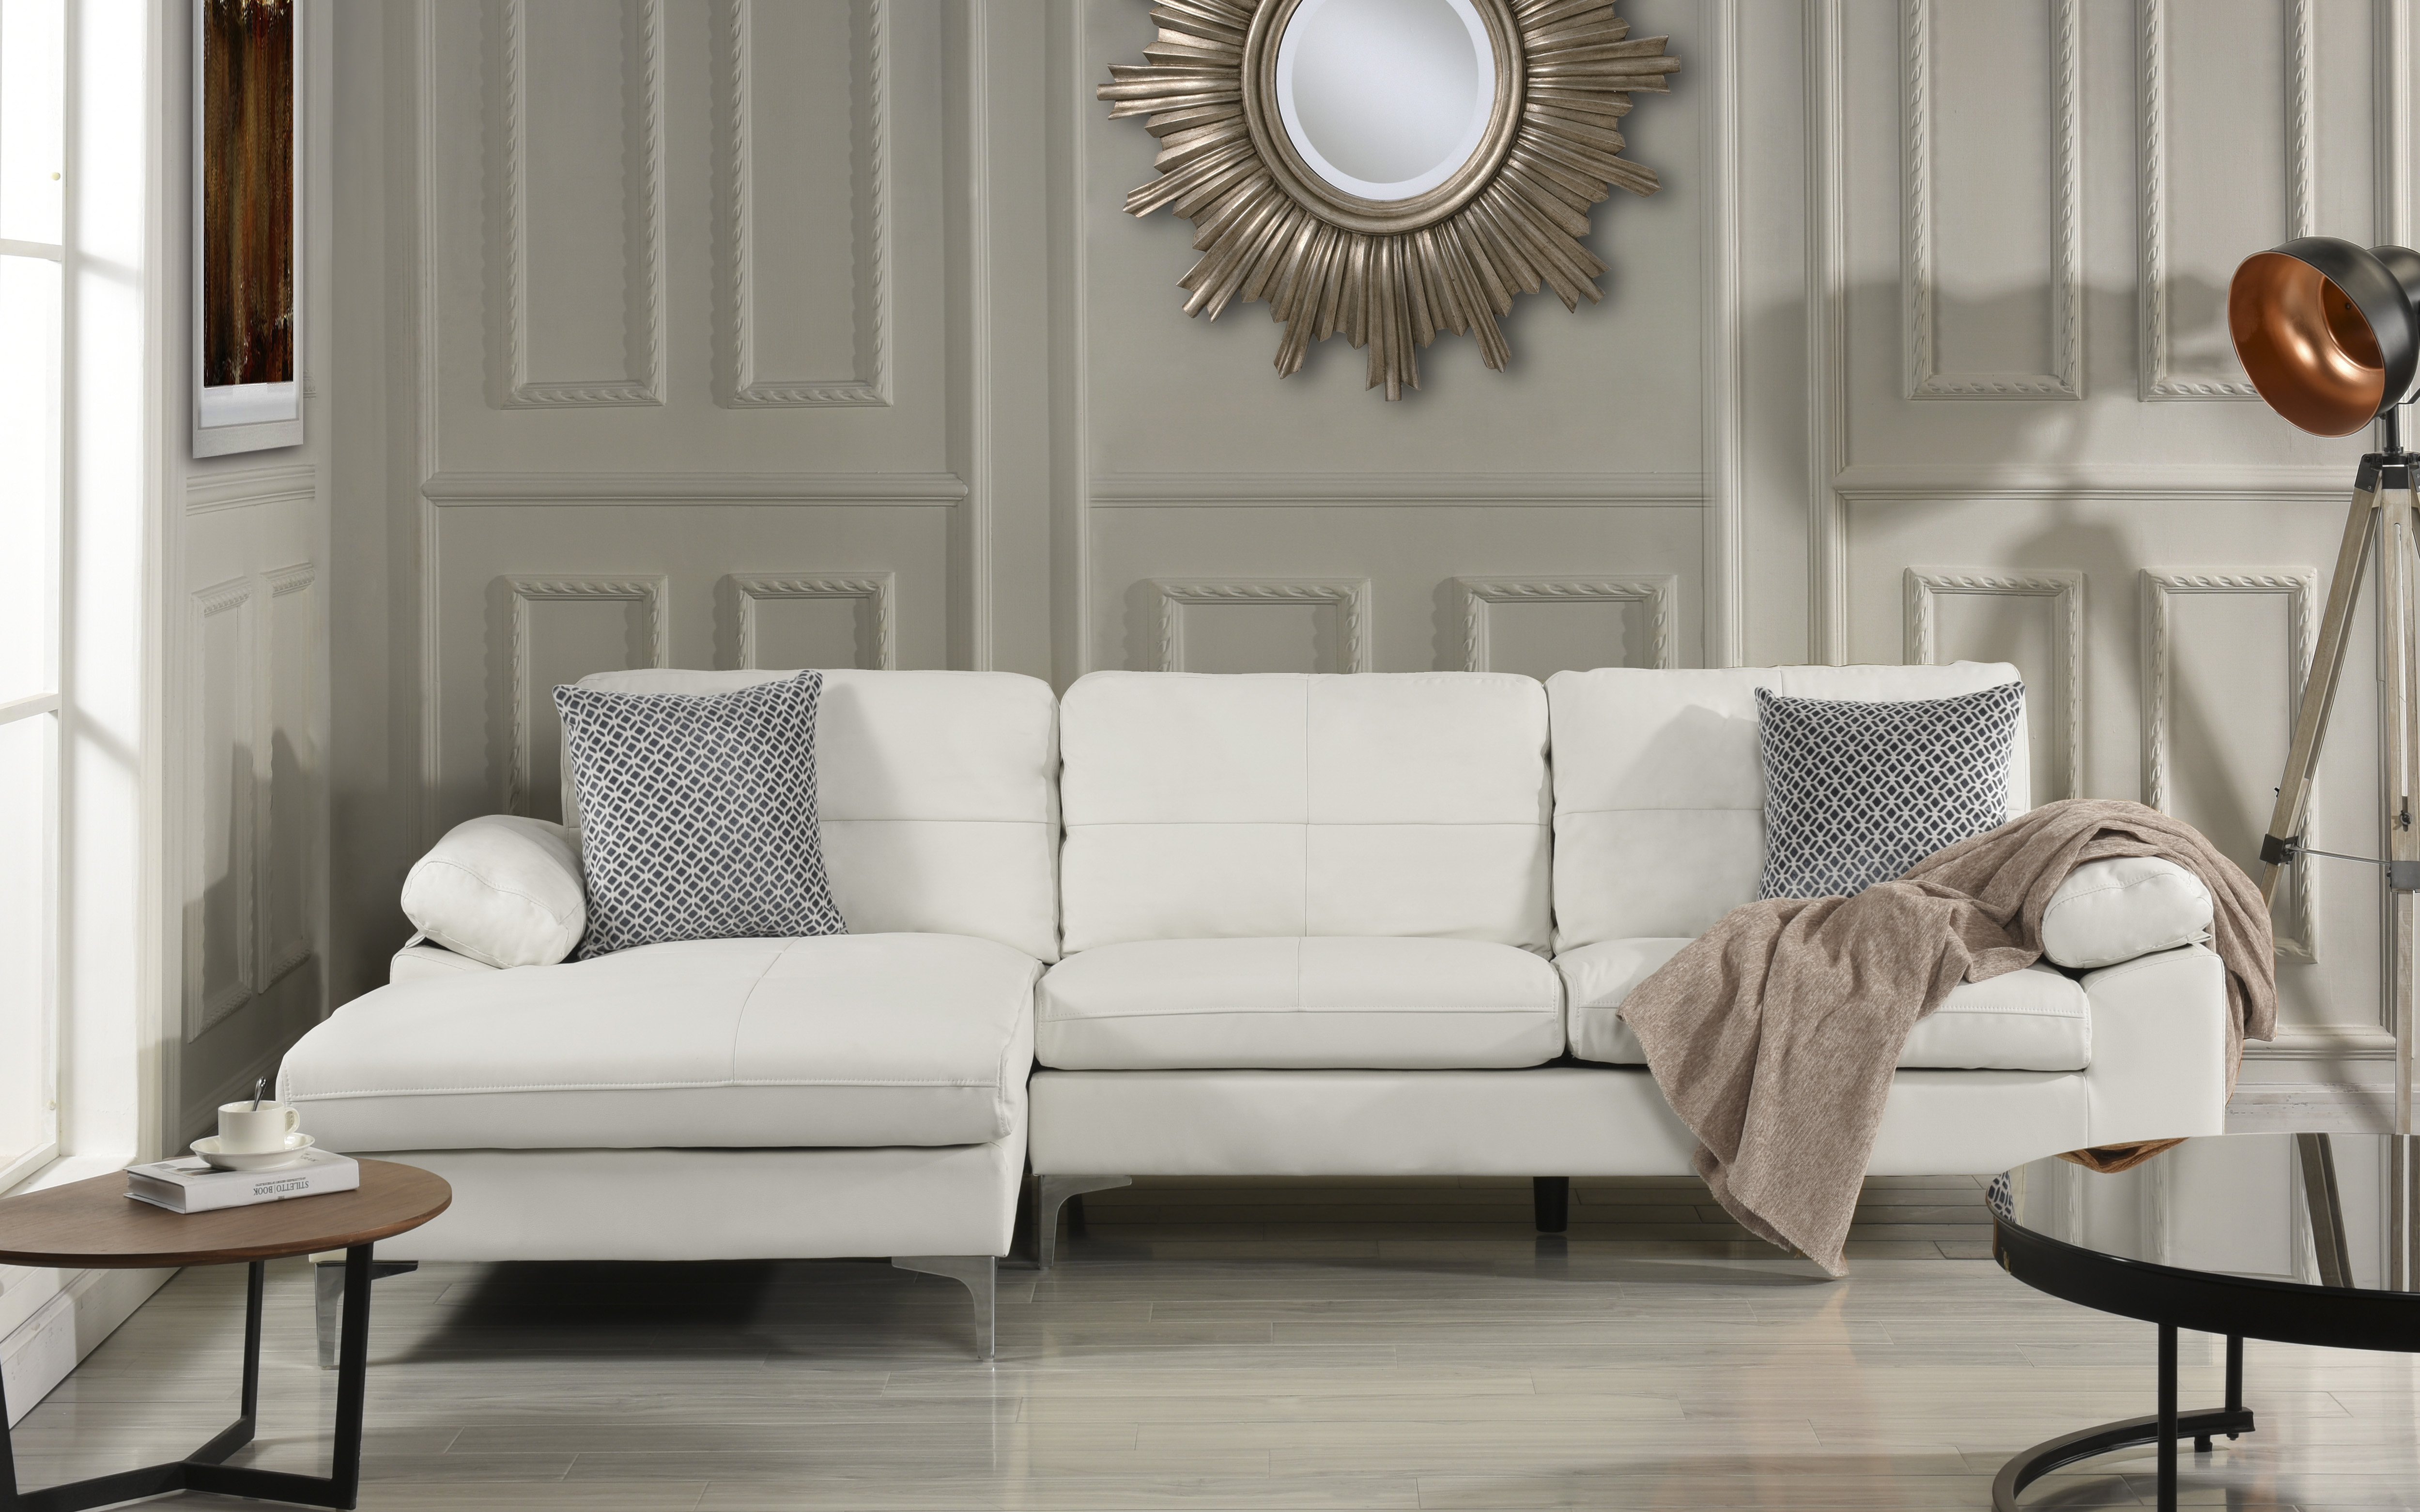 Details about Living Room Family Room Leather Sectional Sofa L-Shape Couch  Left Chaise (White)